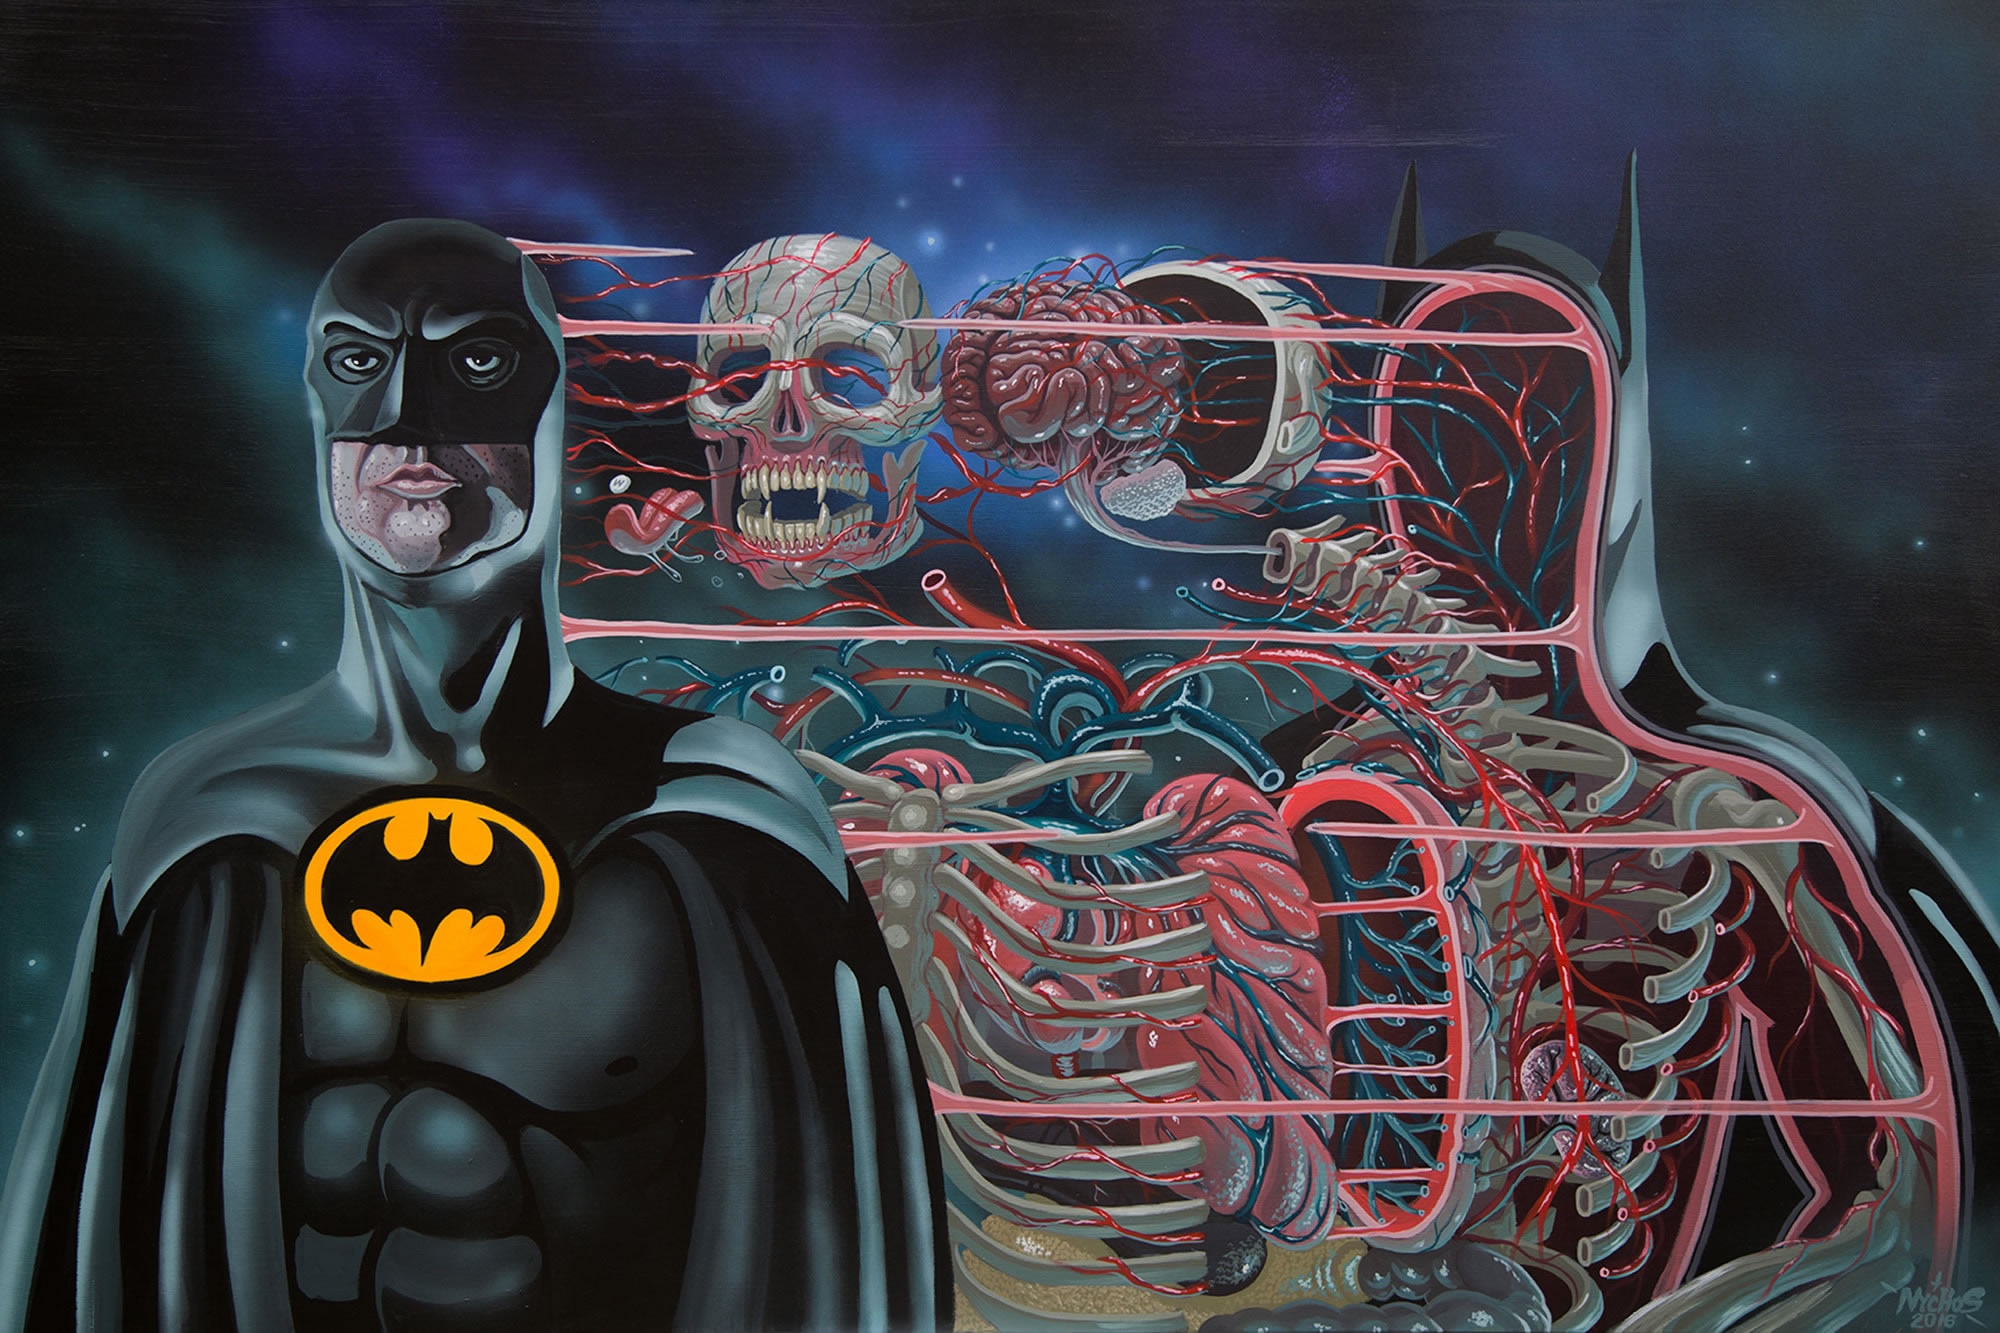 batman dissected, painting